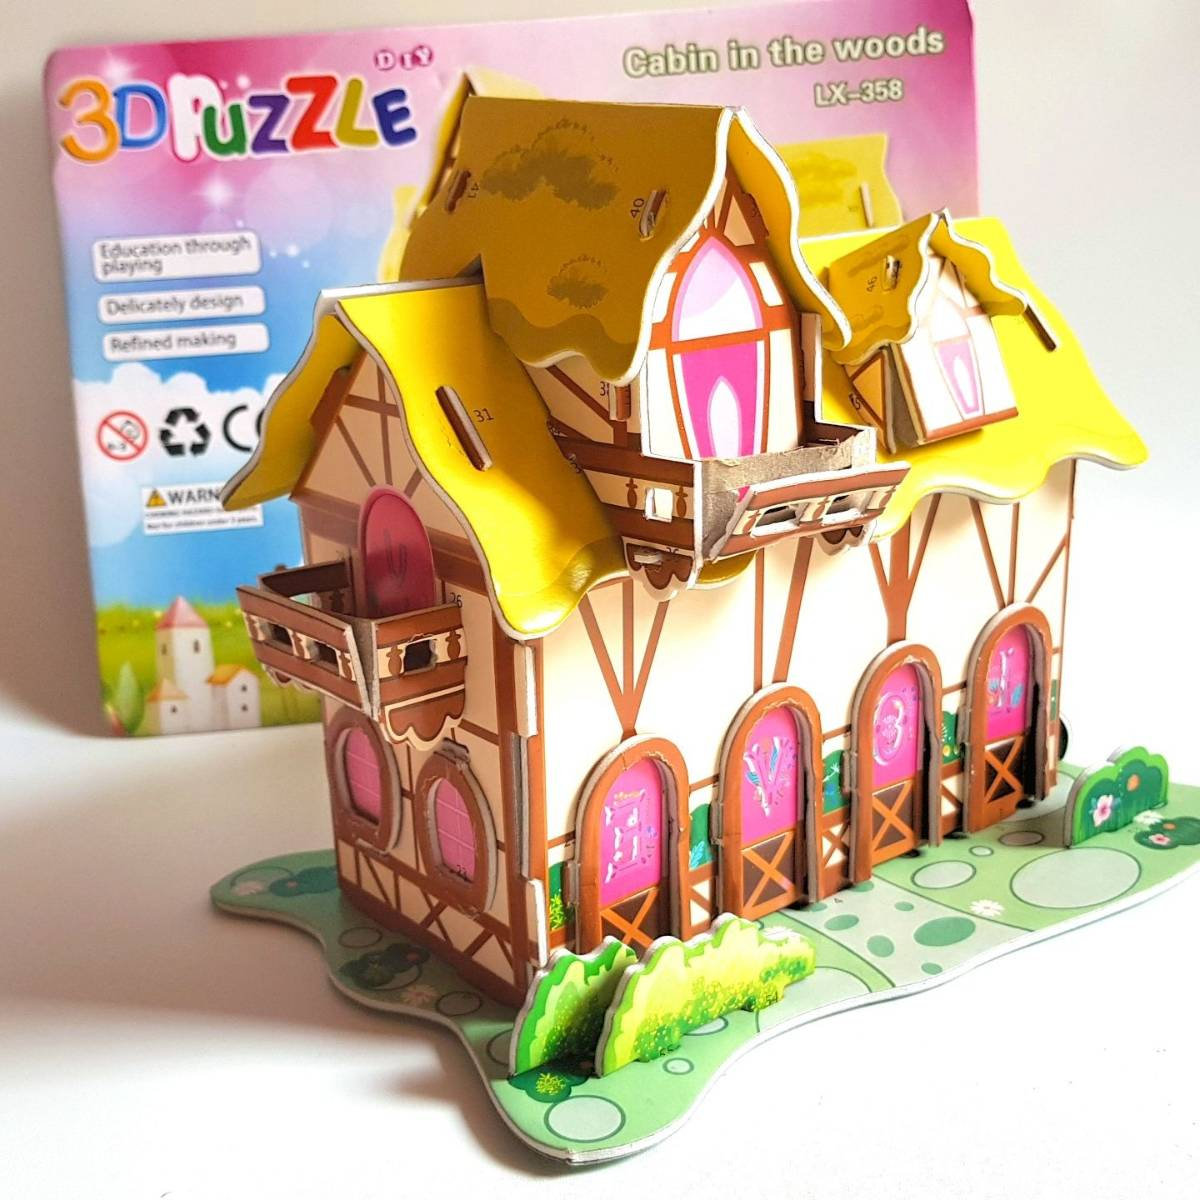 Mainan 3d Puzzle - Cabin In The Woods